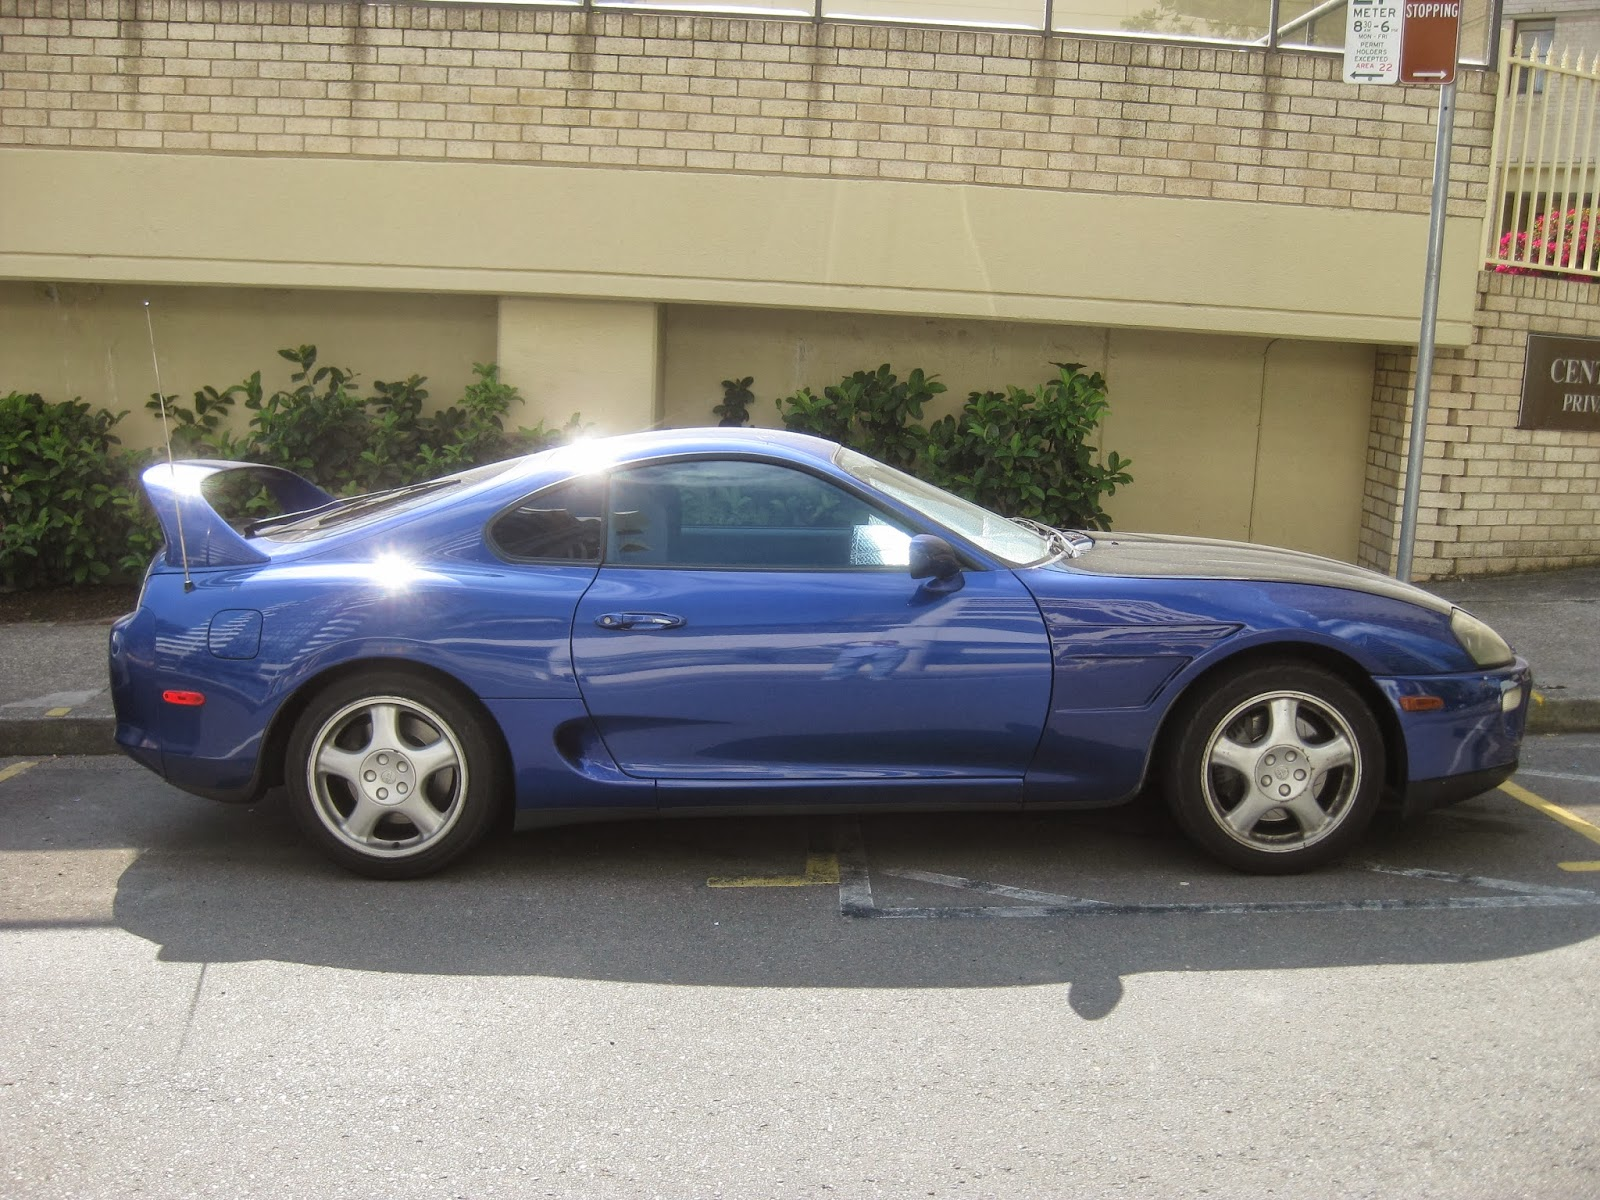 Aussie old parked cars 1998 toyota supra mark iv a80 1998 toyota supra mark iv a80 sciox Gallery